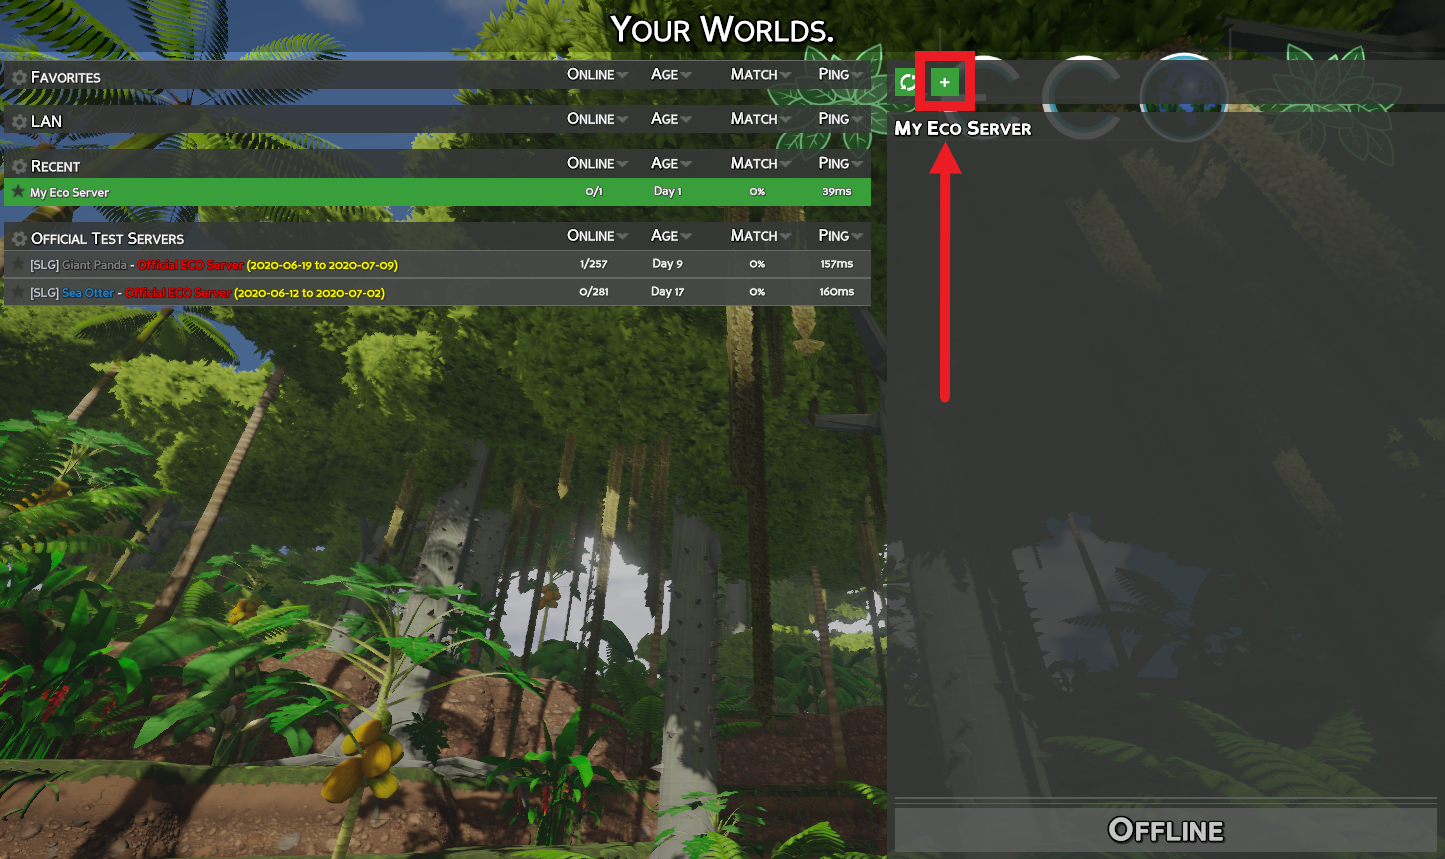 A view of the Your Worlds server listings for the game Eco, showing the button for entering an IP address directly